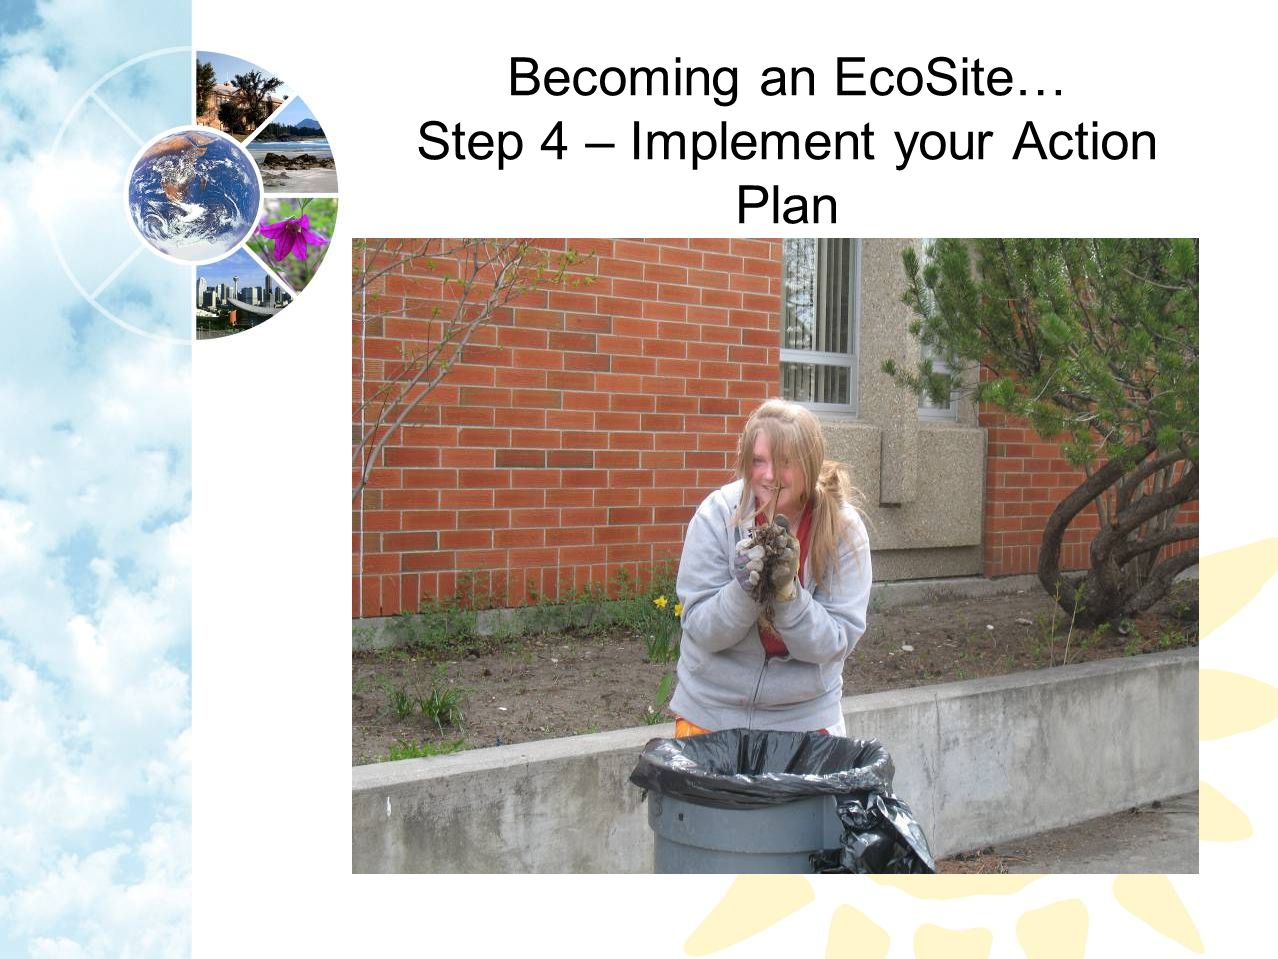 Becoming an EcoSite… Step 4 – Implement your Action Plan